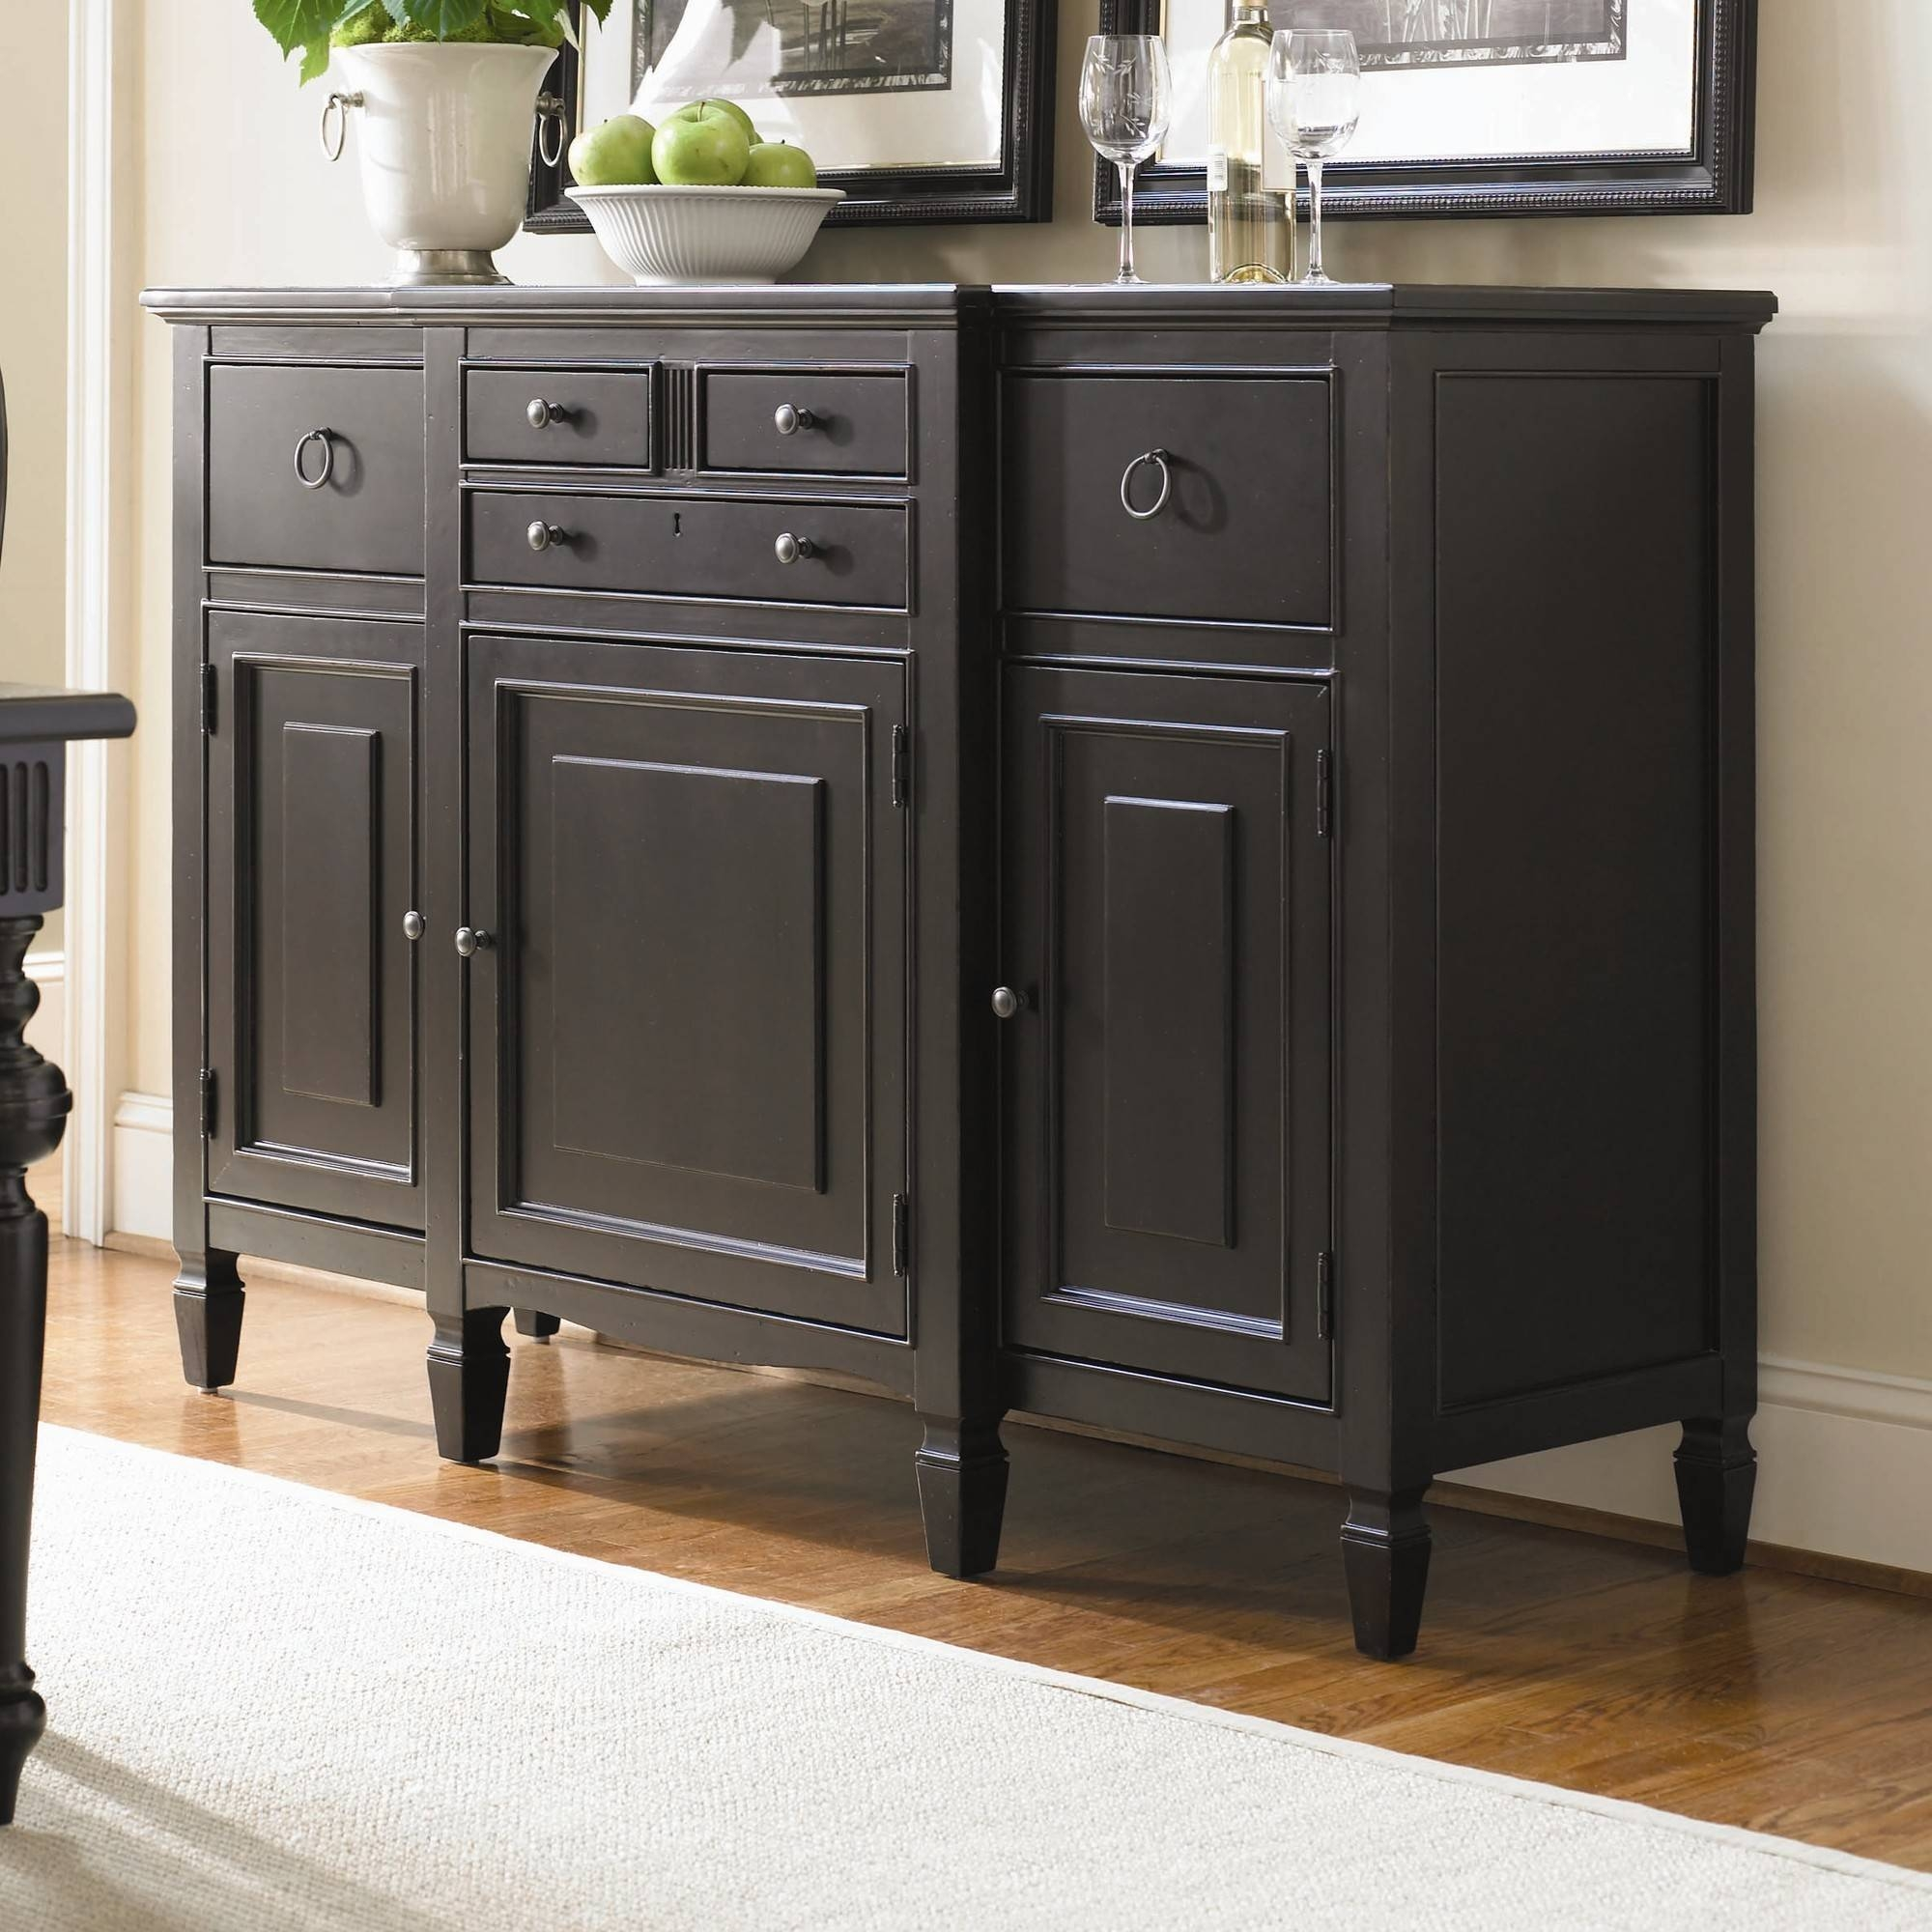 Dining Room Buffet Cabinet Sideboards Buffets Storage Servers 17 For Most Recent Black Dining Room Sideboards (#7 of 15)